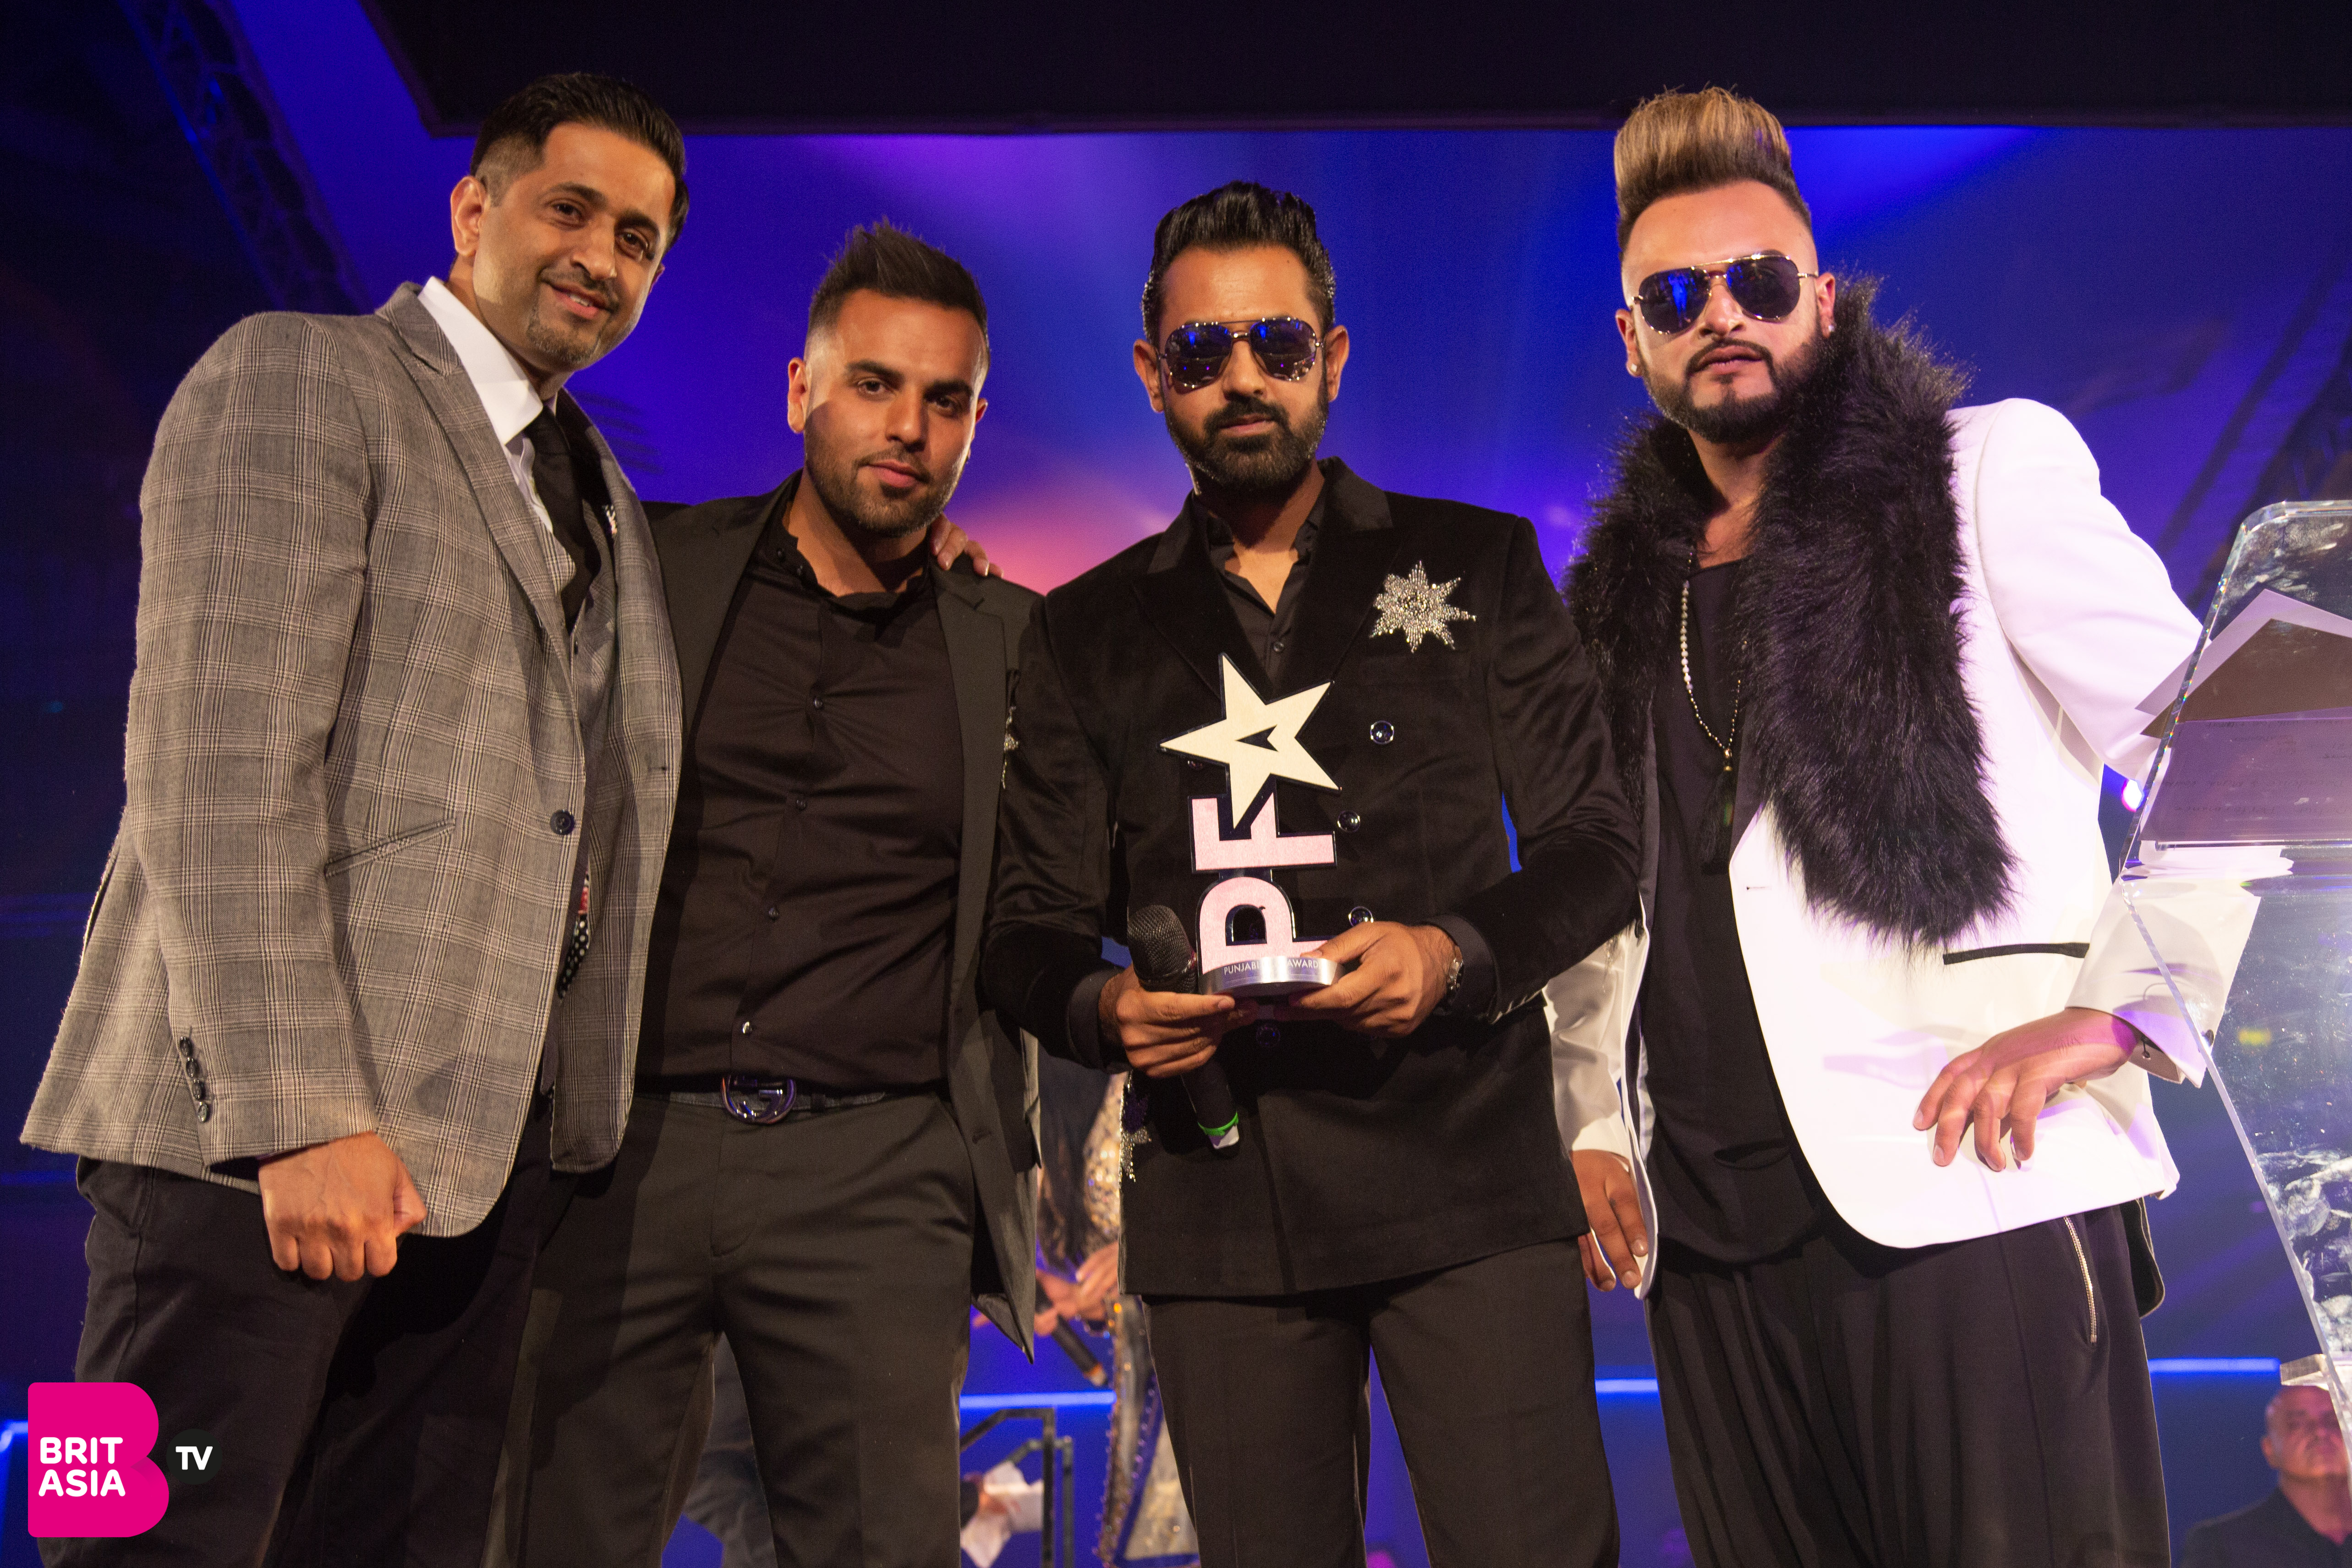 H Dhami, Gurj Sidhu and sponsor Snap Fitness 24/7 present the award for Best Film Song